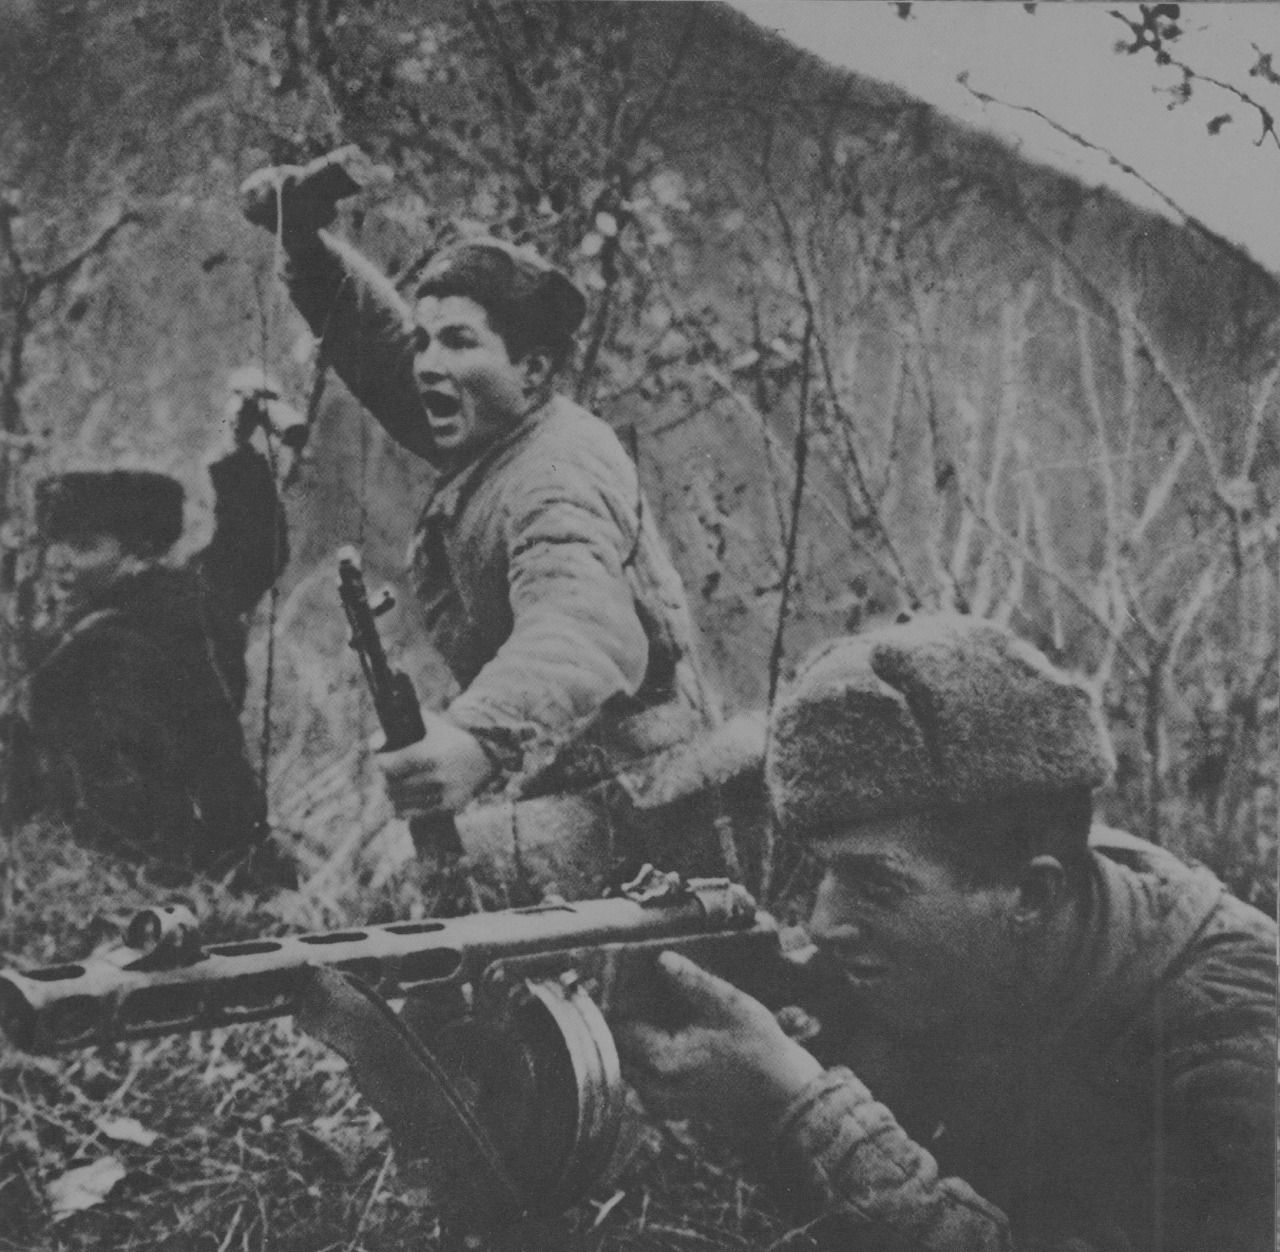 Soviet soldiers of the 83rd Marine Brigade engage in combat with enemy intelligence forces in the Caucasus, 1942. [x]